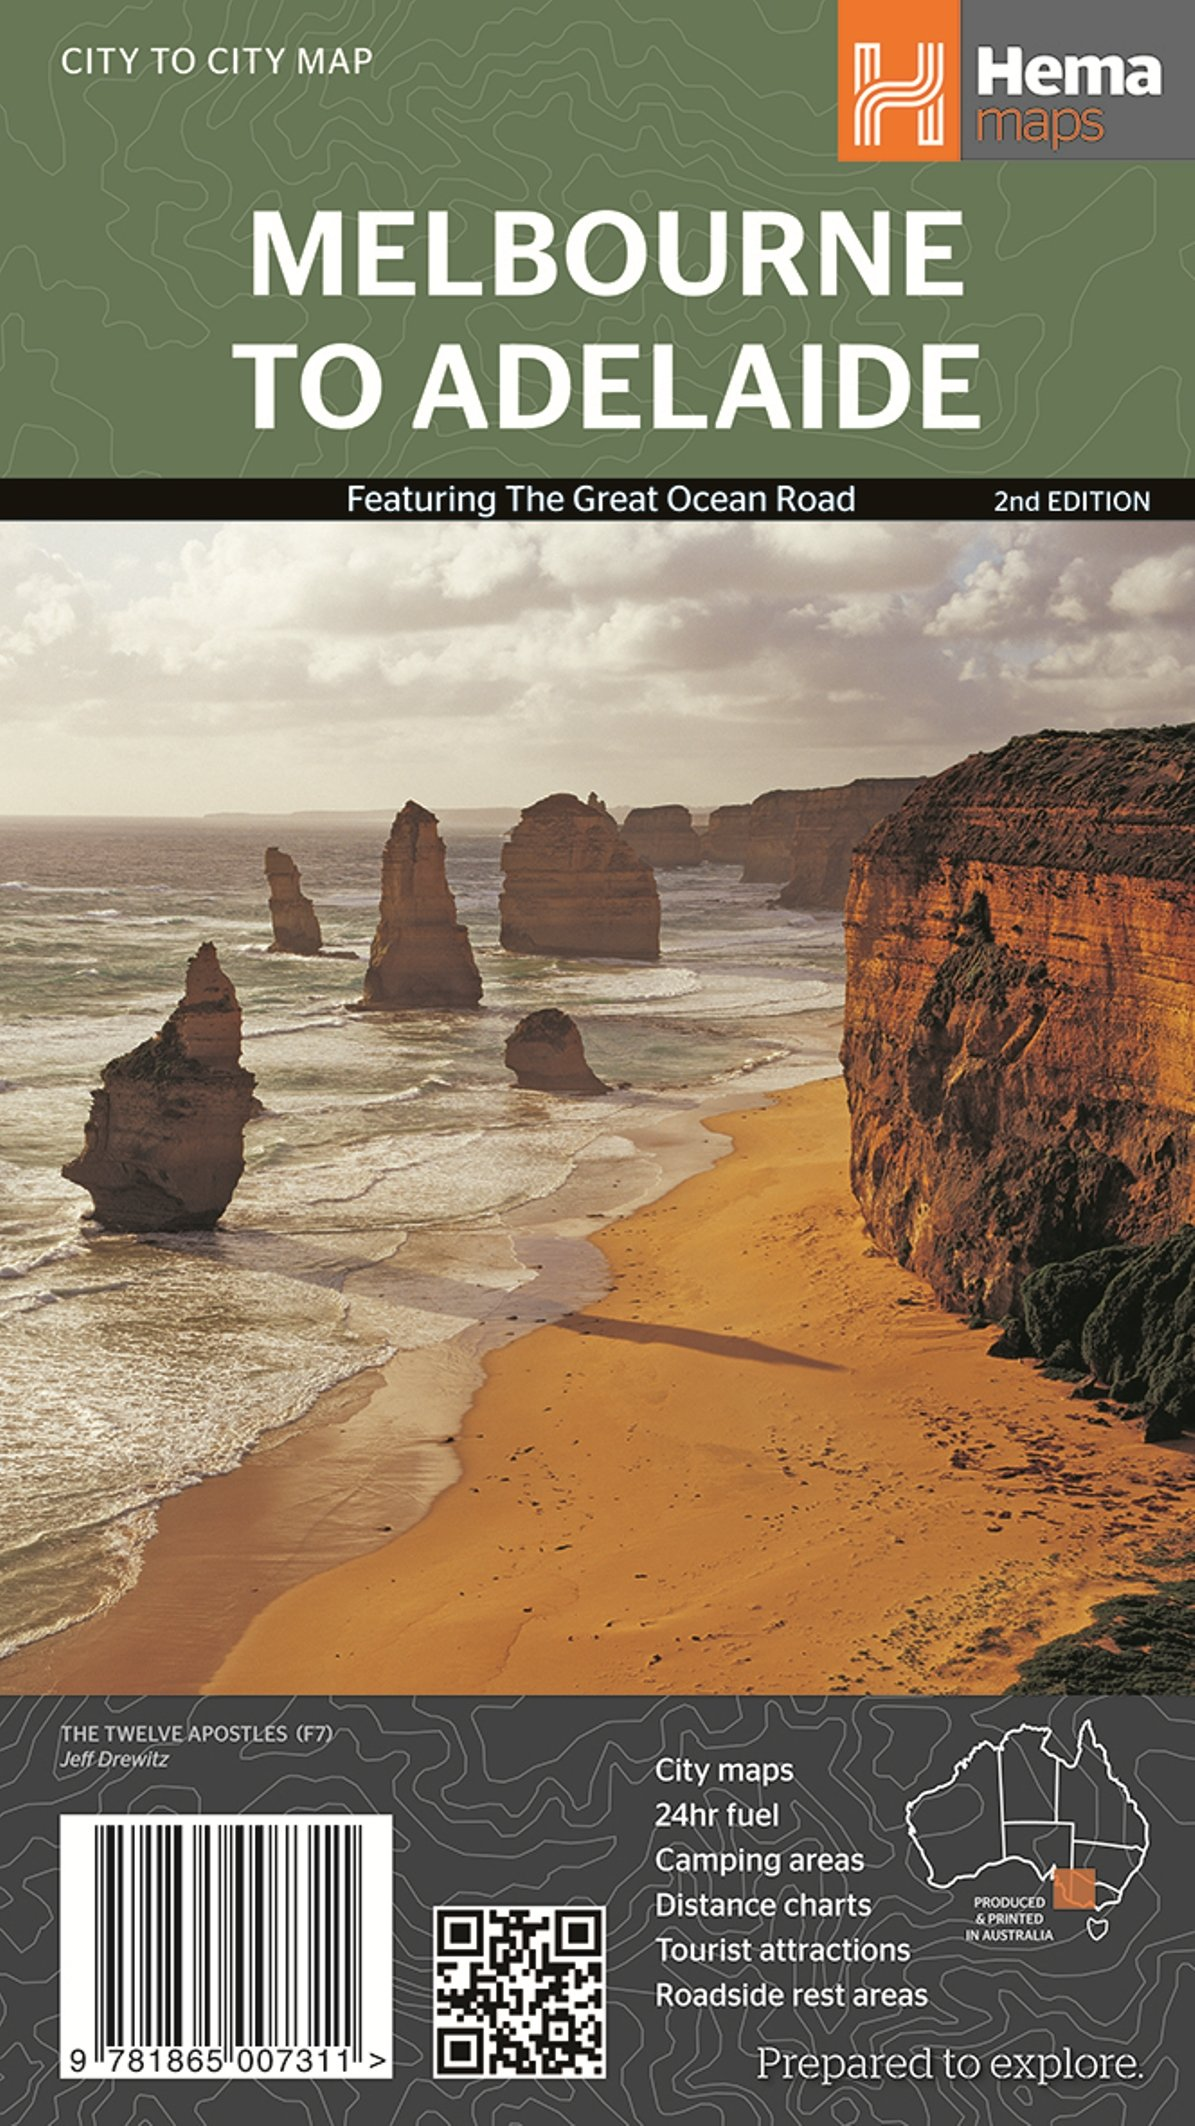 Melbourne to Adelaide 1 : 450 000: featuring the Great Ocean Road / City maps / 24 hour fuel / Camping areas / Distance charts / Tourist attractions / Roadside rest areas